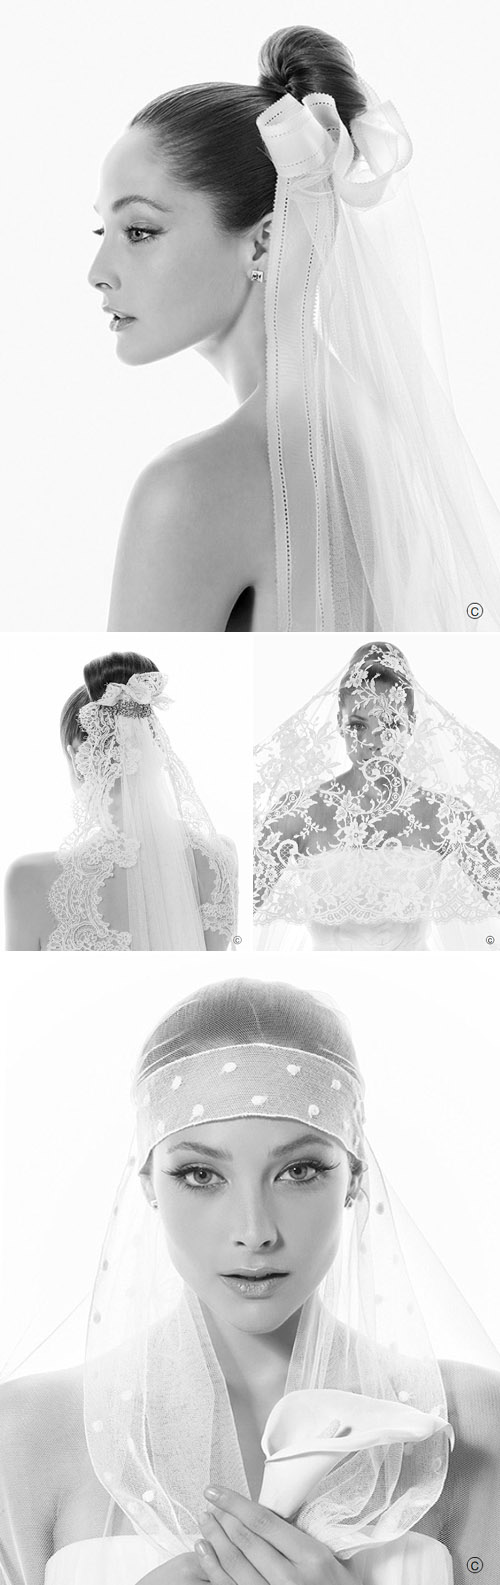 http://junebugweddings.com/img/whatjunebugloves/june2010/rosa-clara-bridal-mantilla-veils-2.jpg